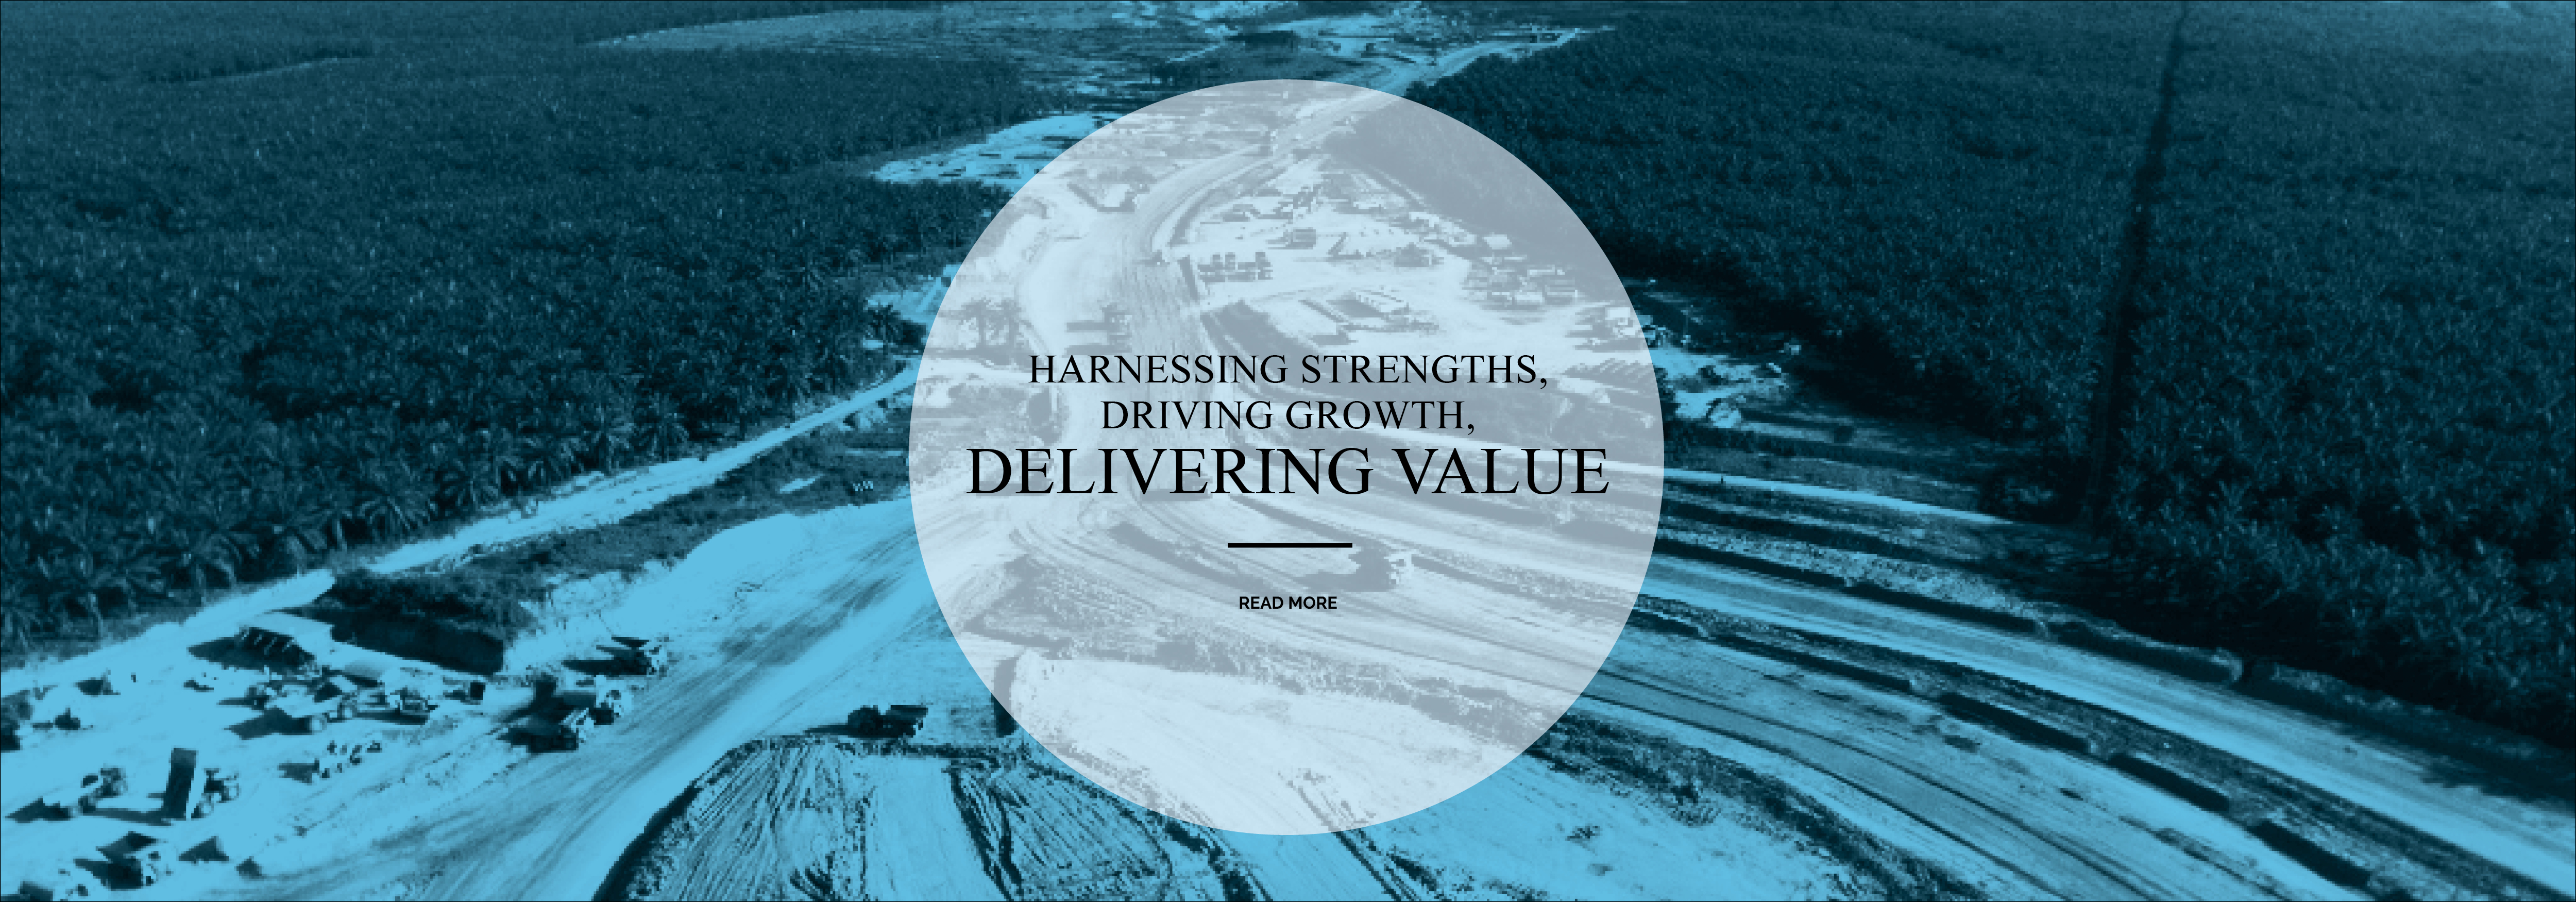 Harnessing Strengths, Driving Growth